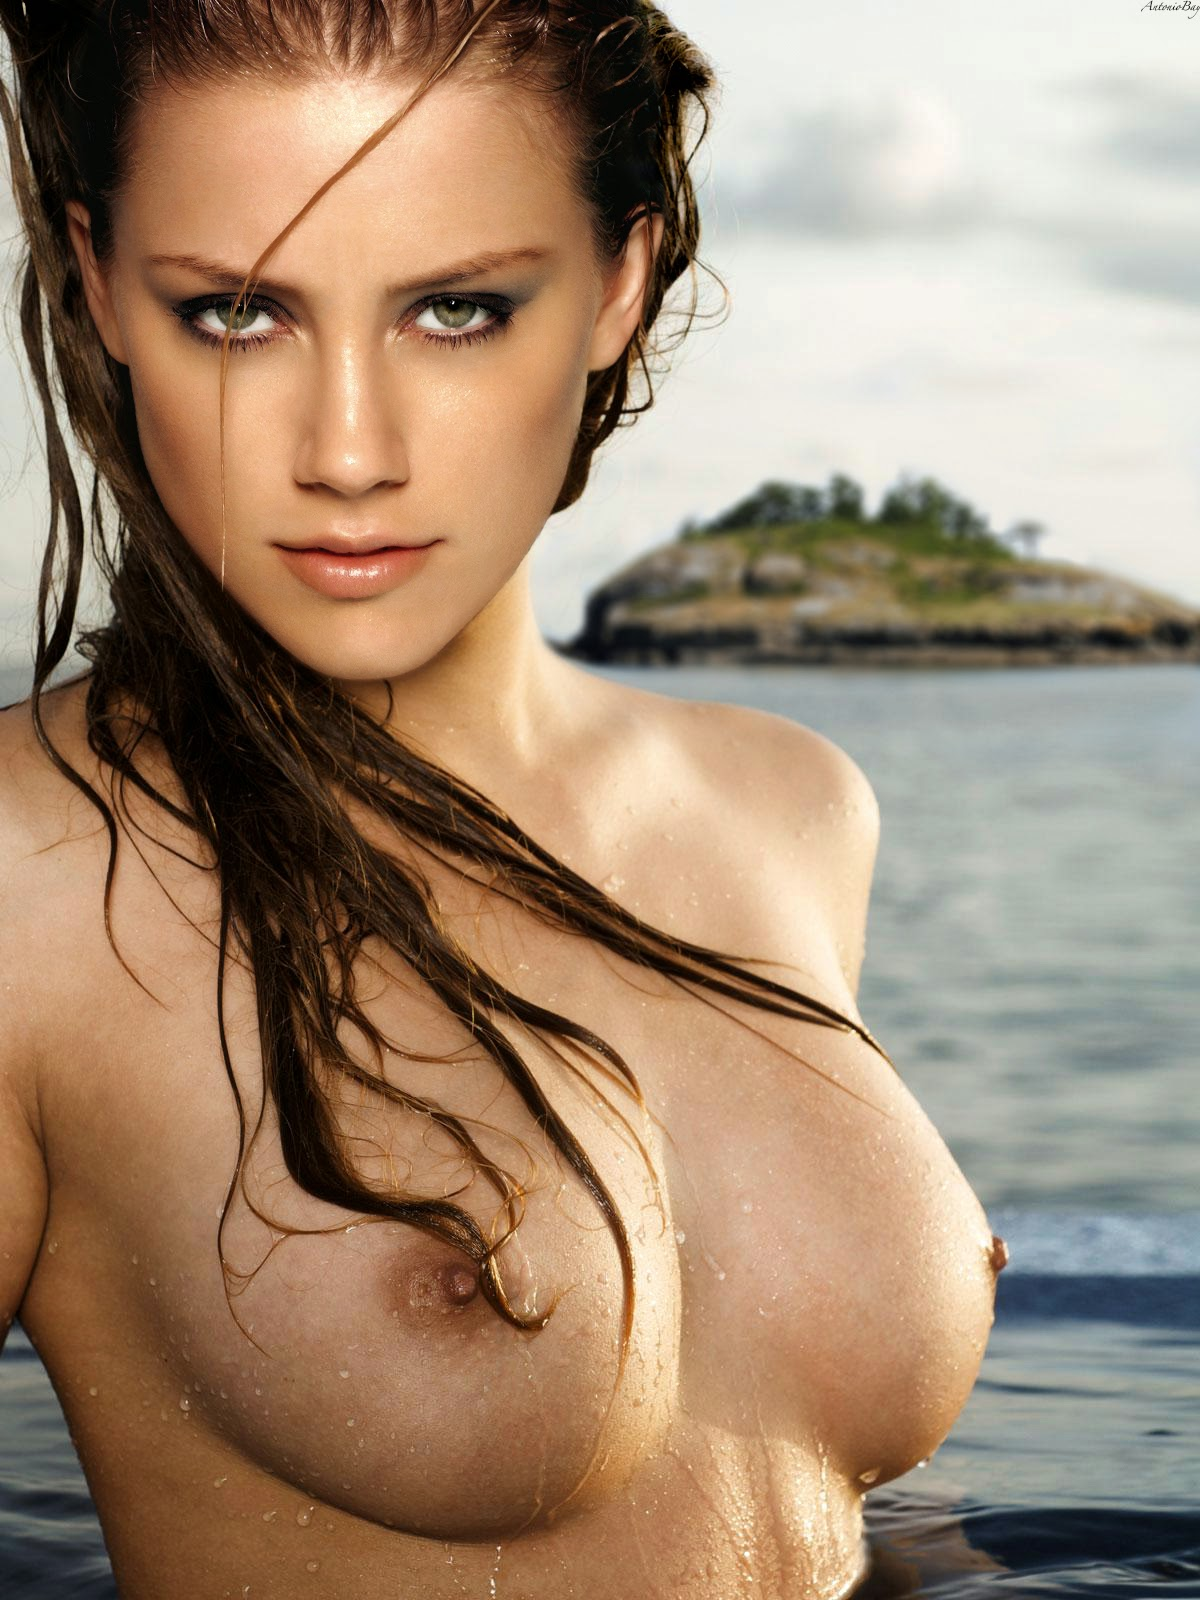 from Maximus naked pic of amber heard